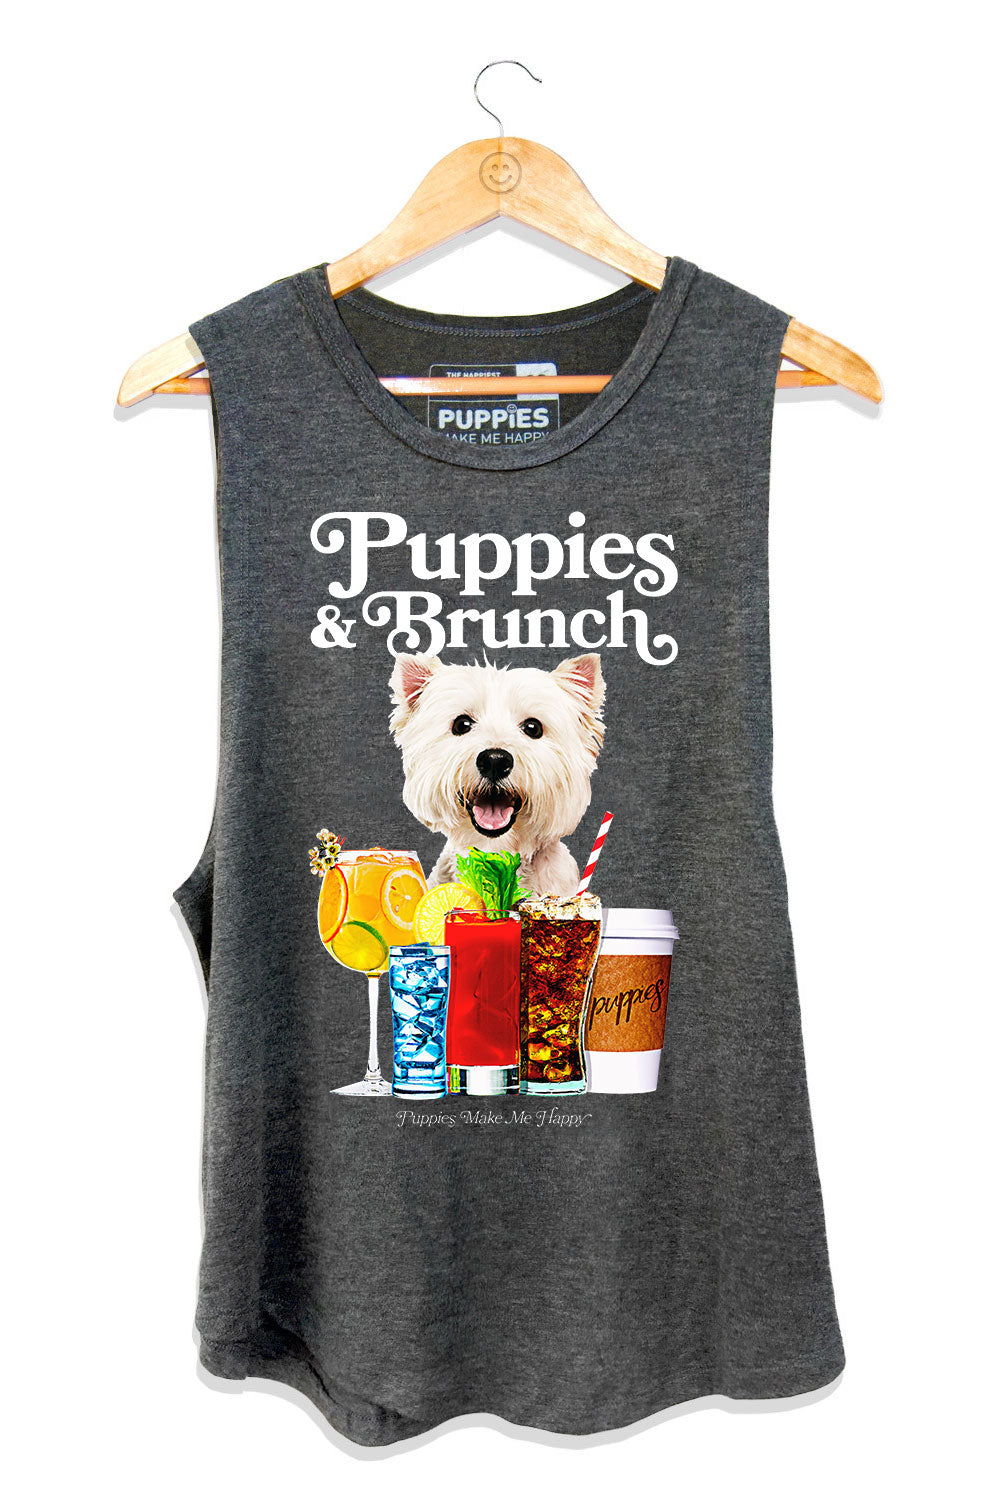 Puppies and Brunch Sleeveless